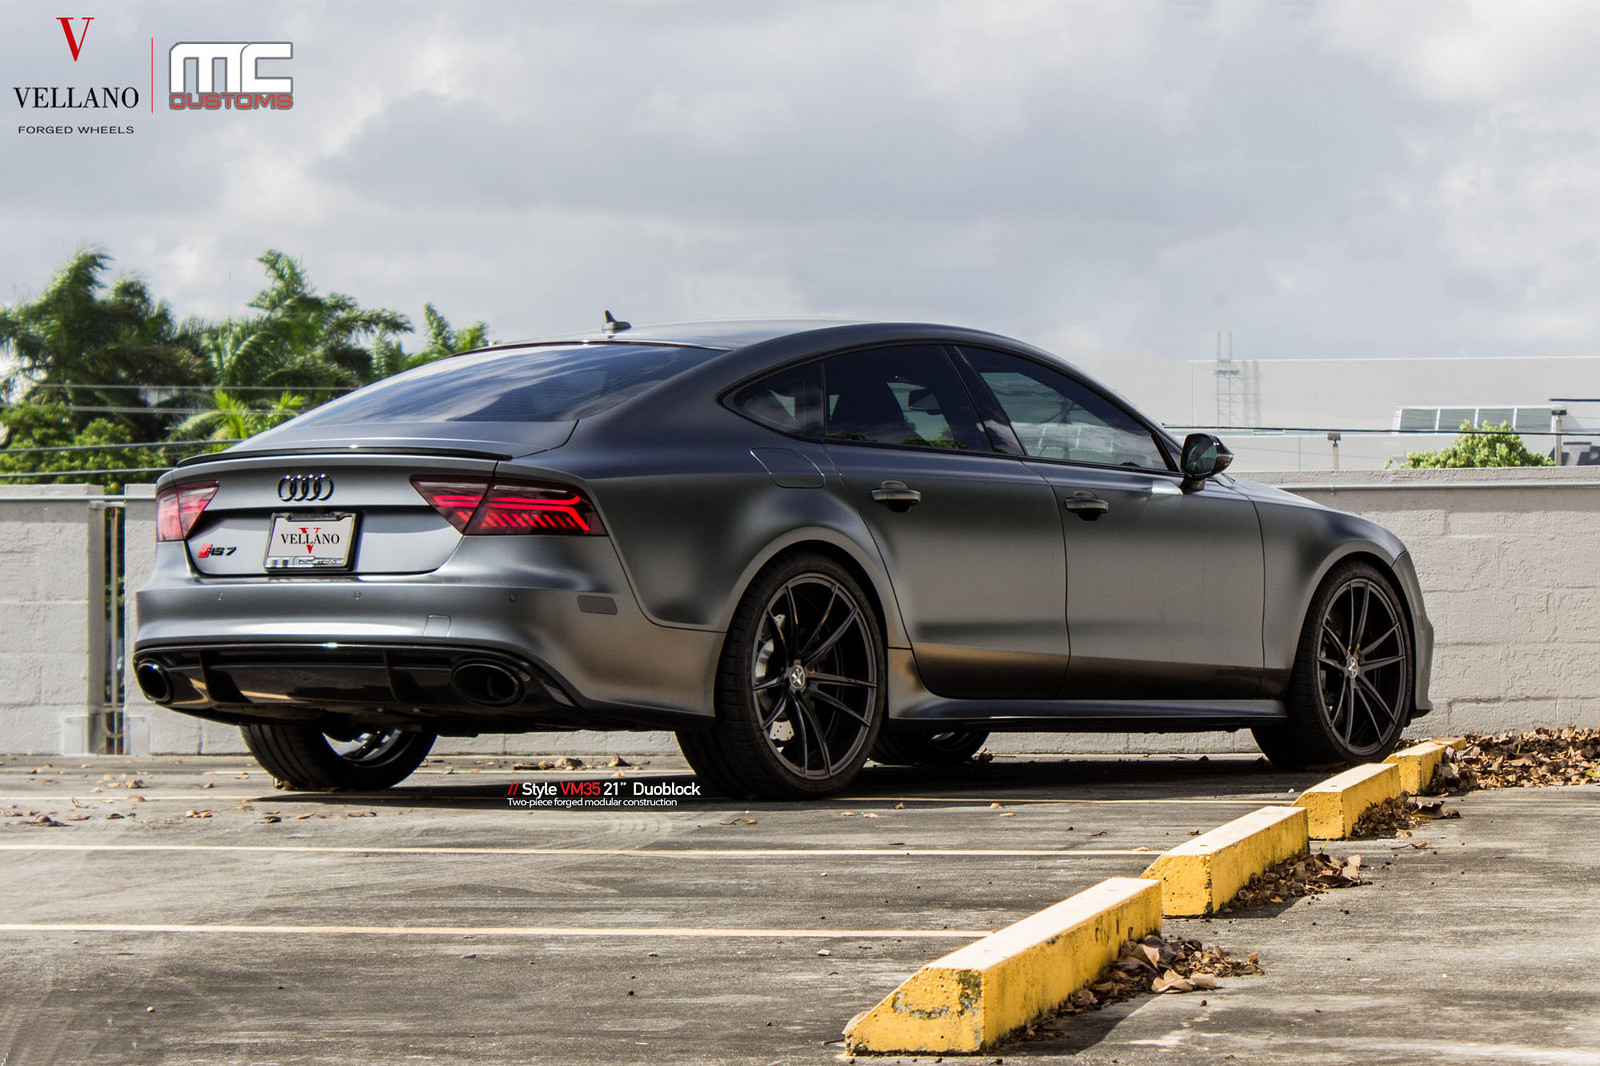 Dh Auto Sales >> Satin Grey Audi RS7 On Vellano Wheels Is A Supercar-Slayer | Carscoops